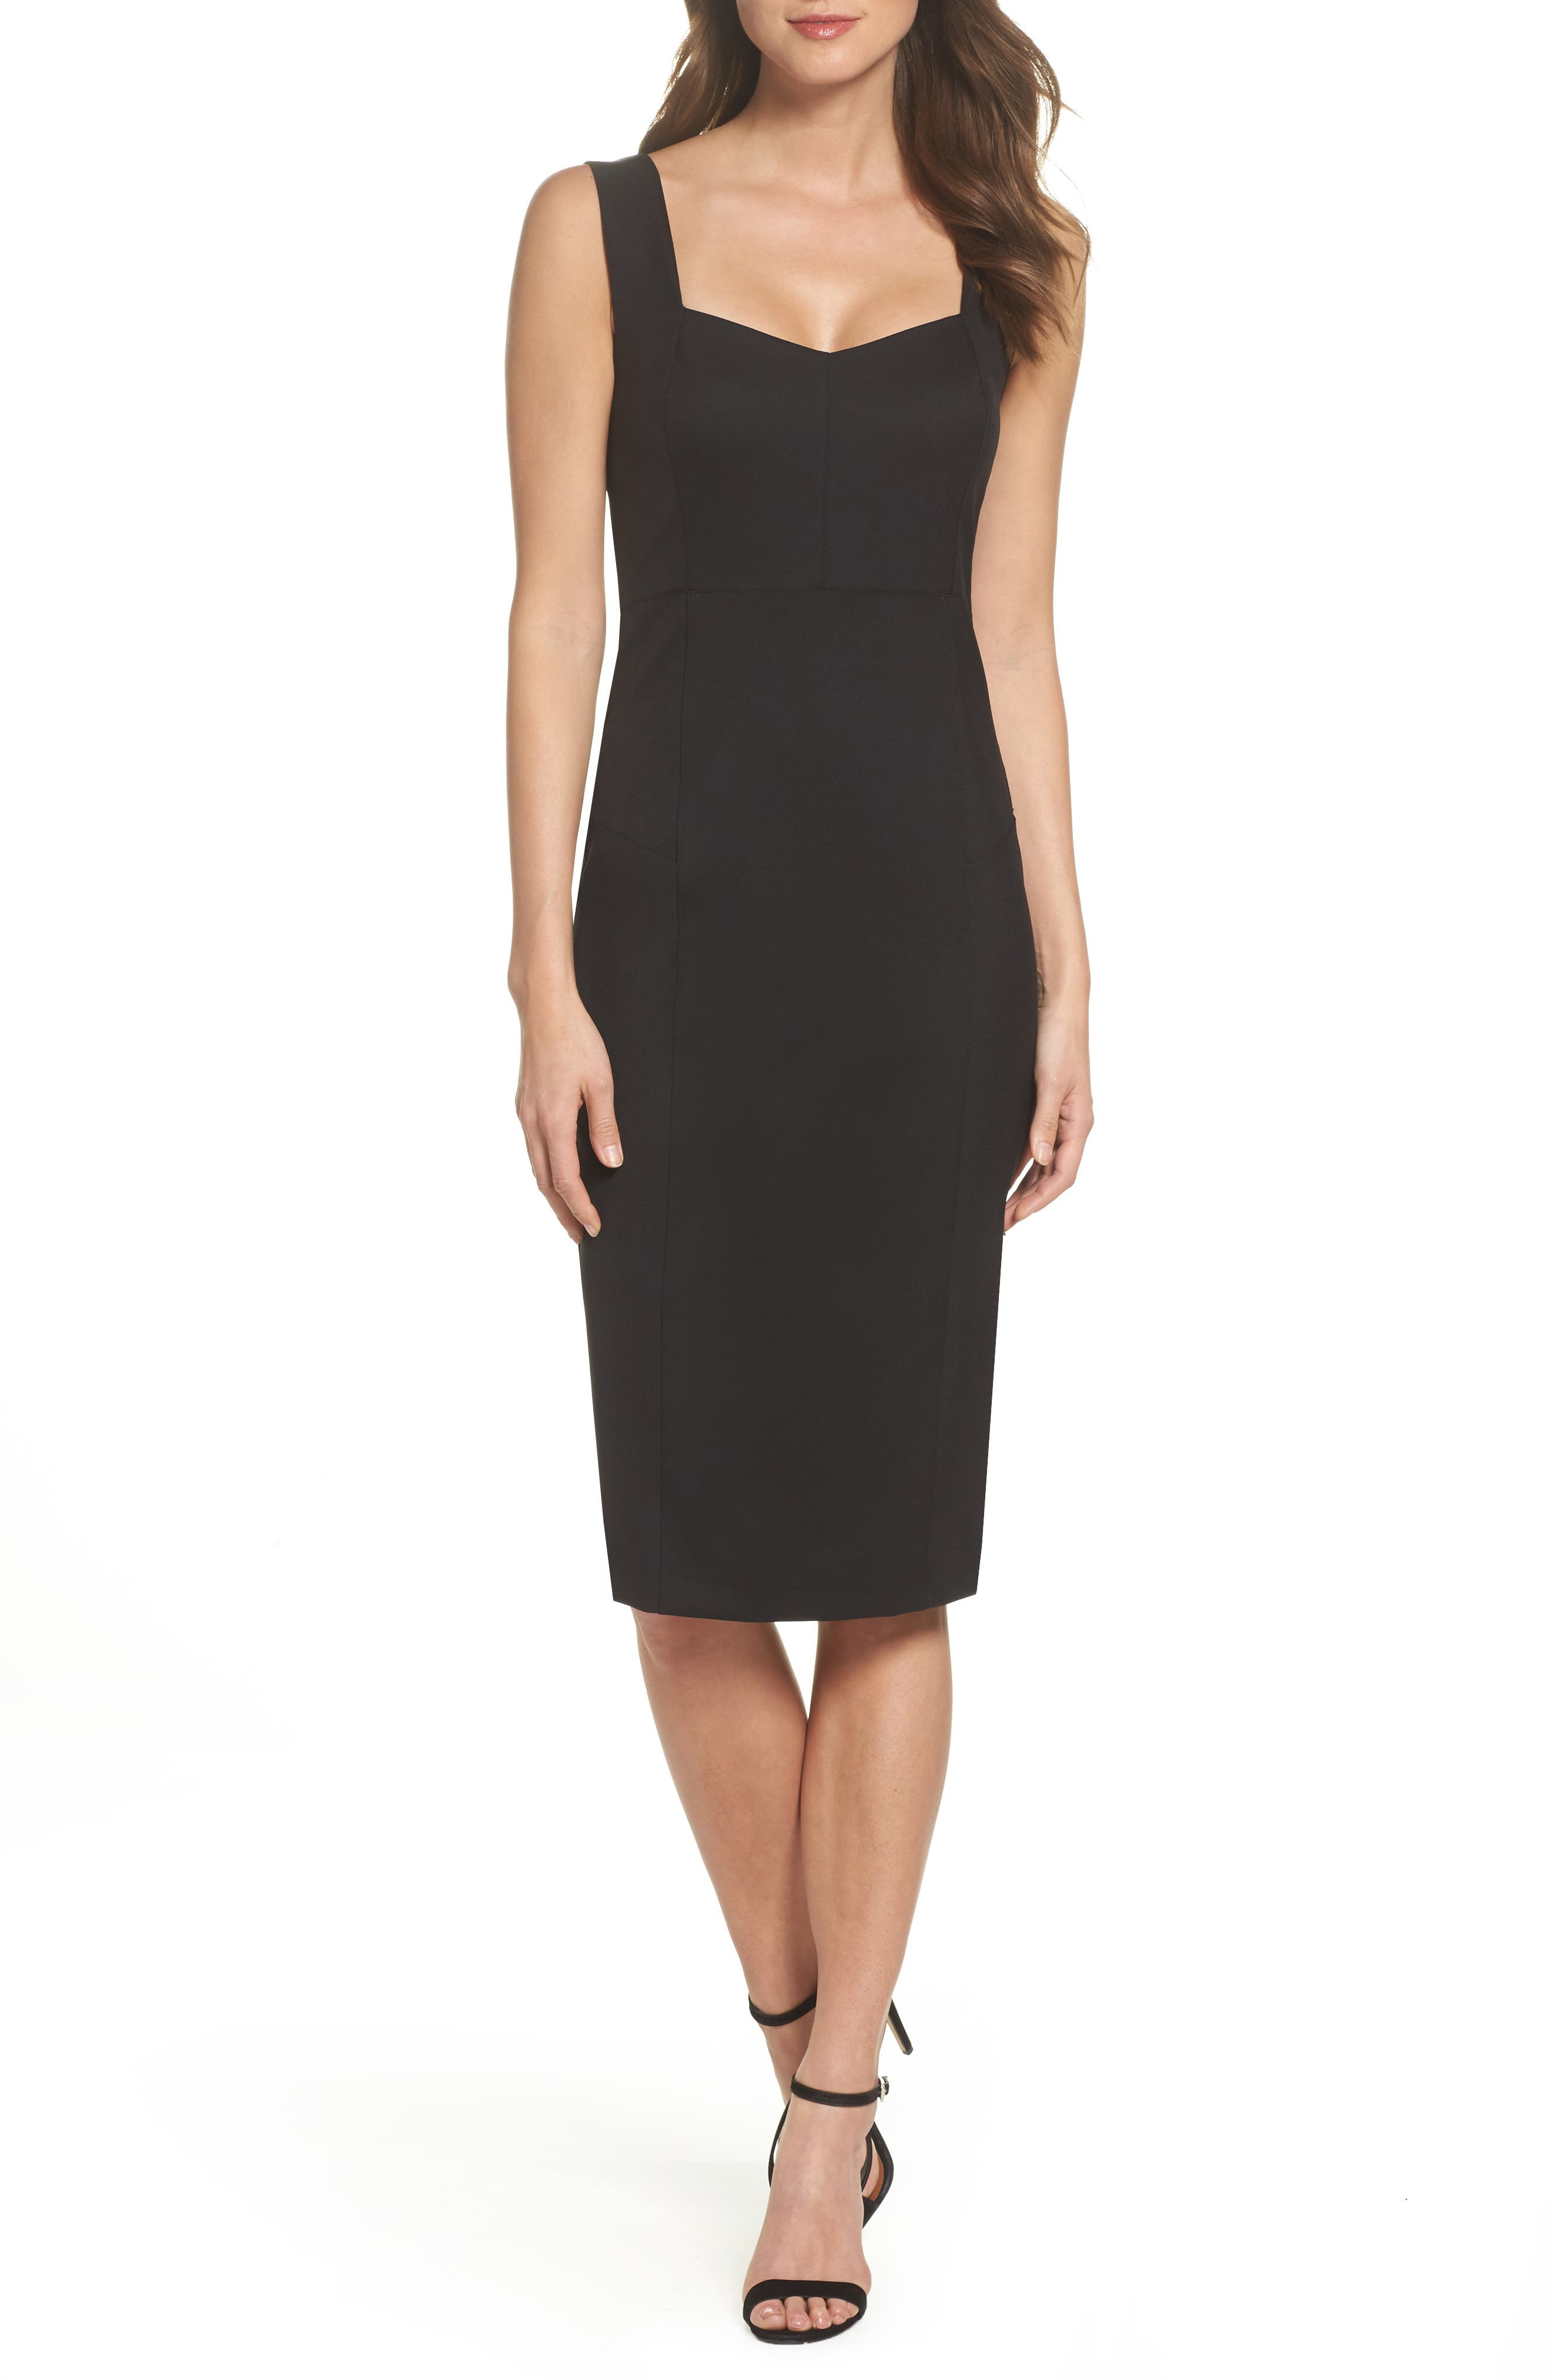 FELICITY & COCO Mirren Midi Body-Con Dress, Main, color, 001